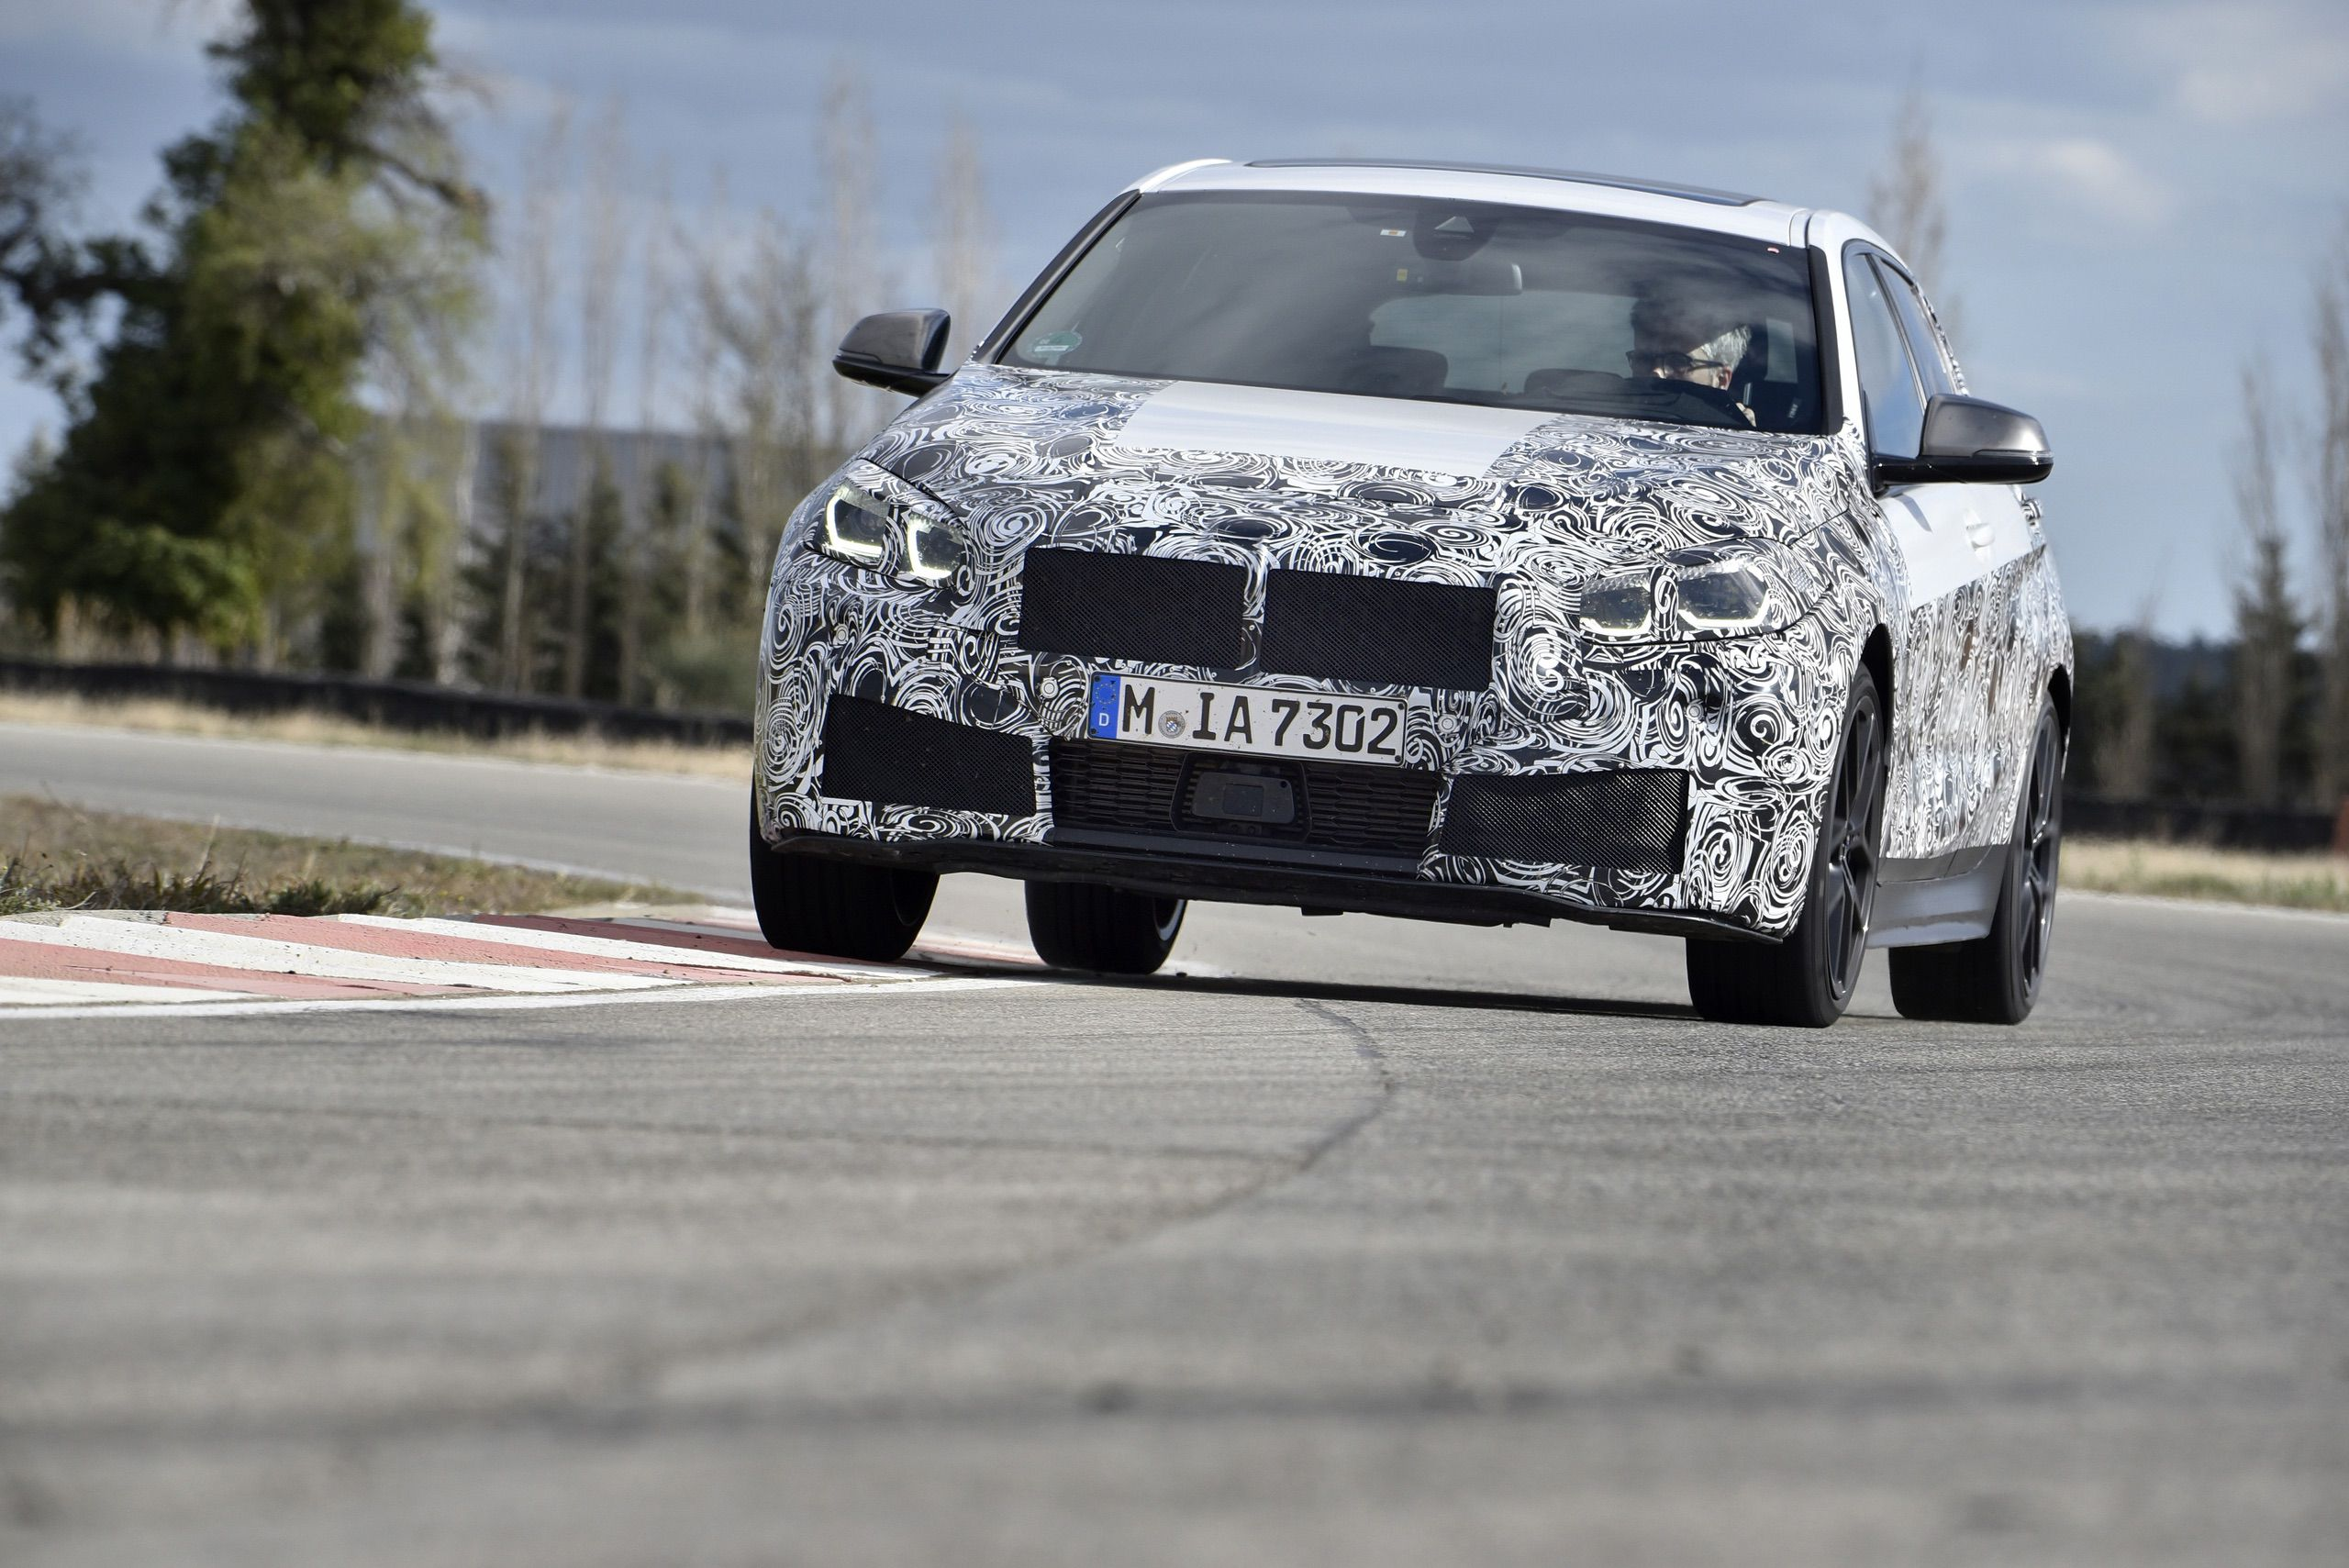 New 2019 BMW M135i to achieve similar Nurburgring times as